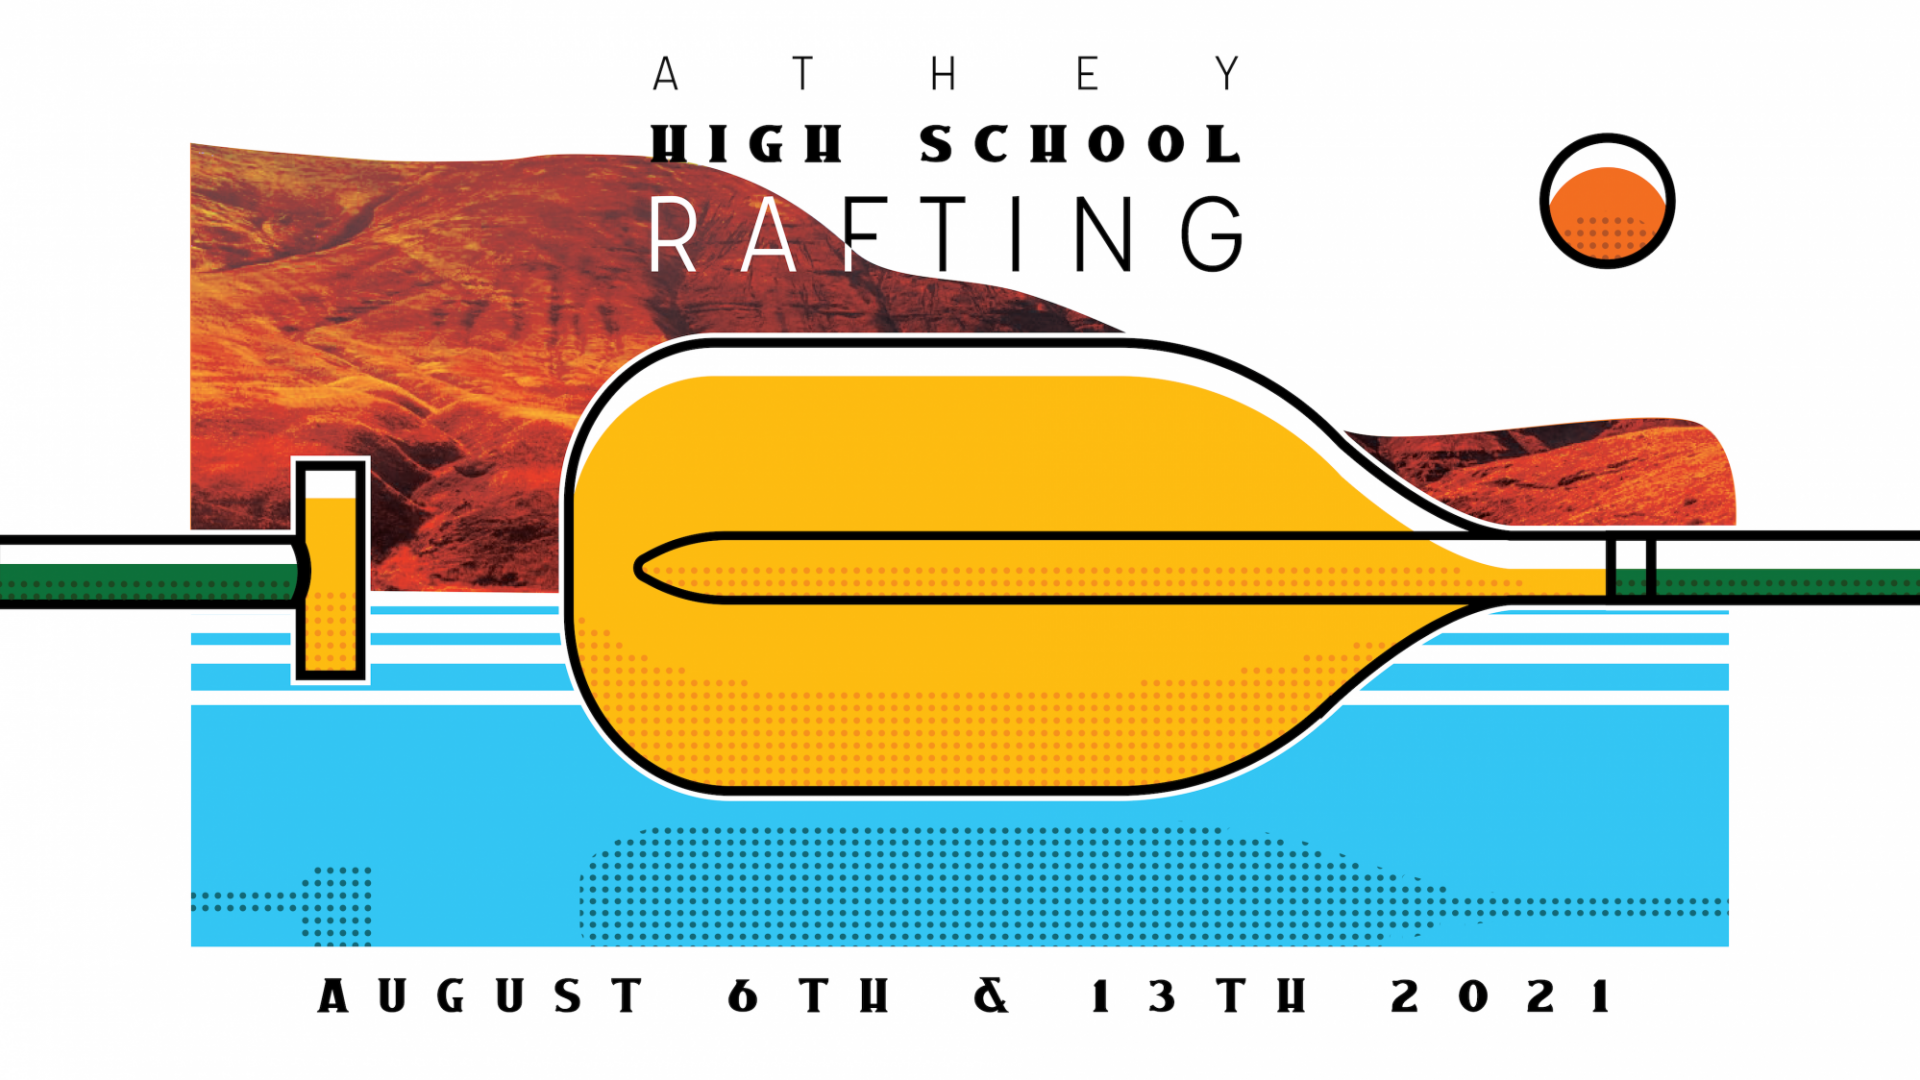 Poster for HS Rafting